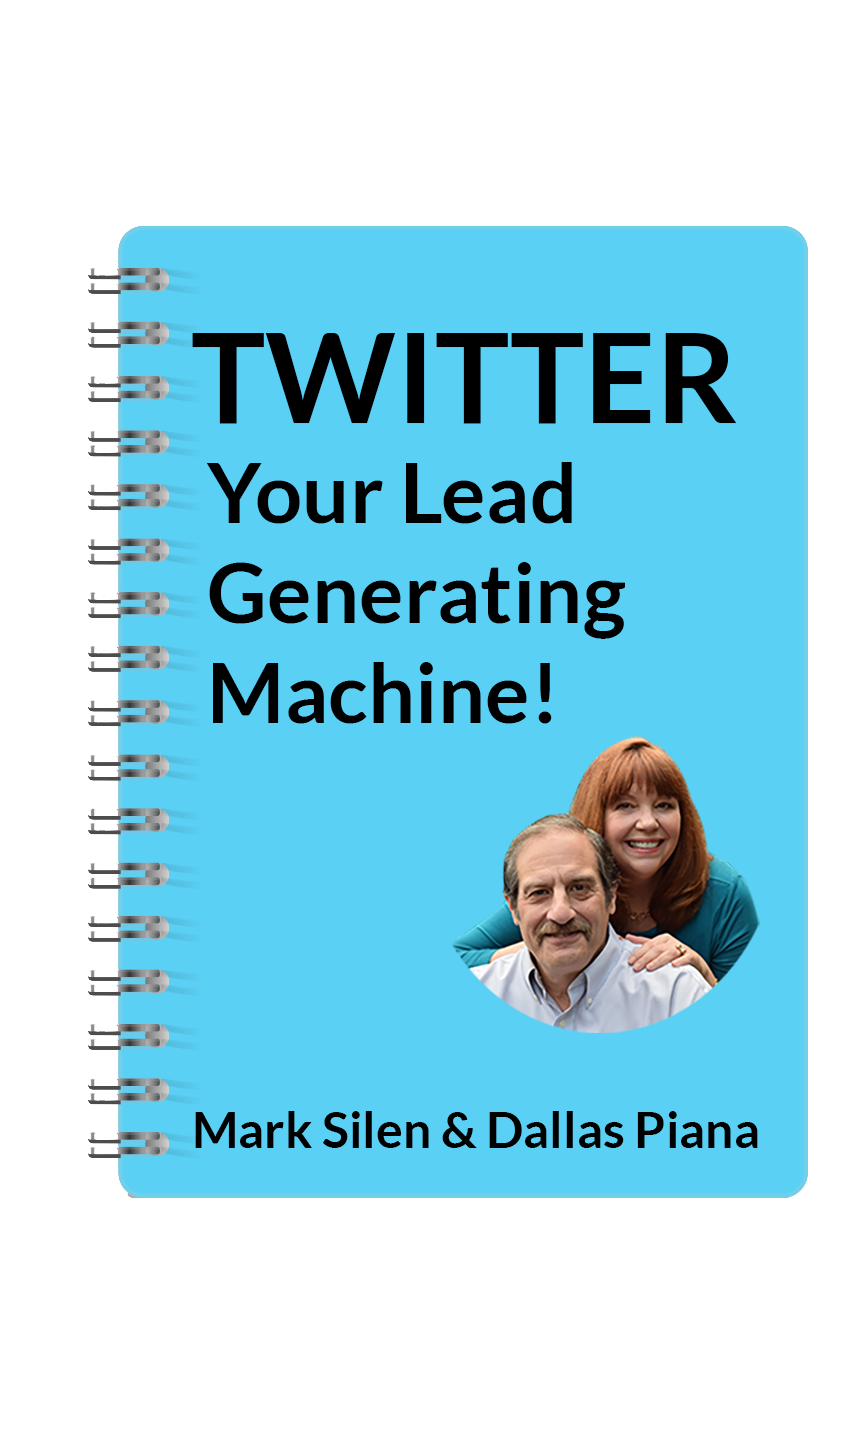 Twitter Lead Generating Machine